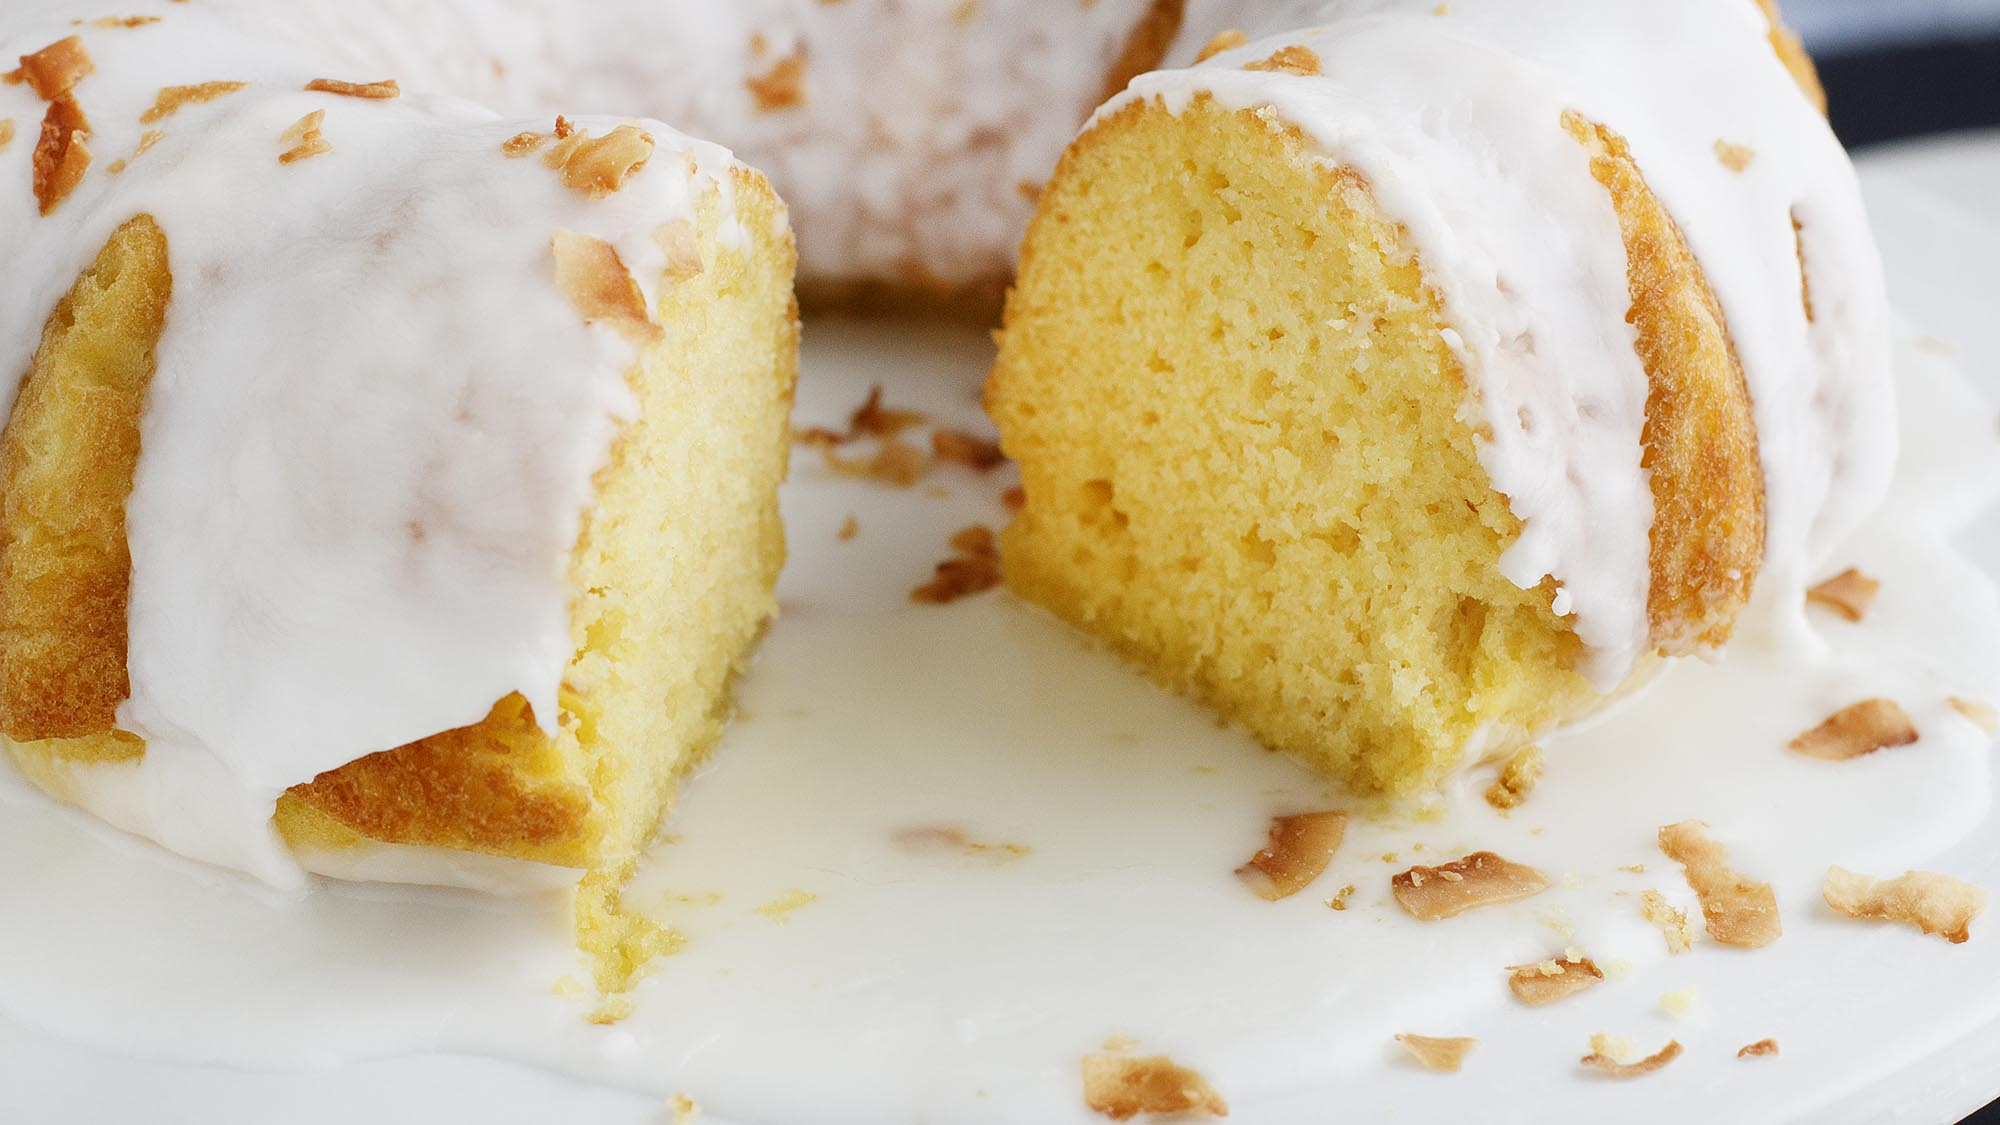 Thai Kitchen Lemon Coconut Cake with Lemon Glaze